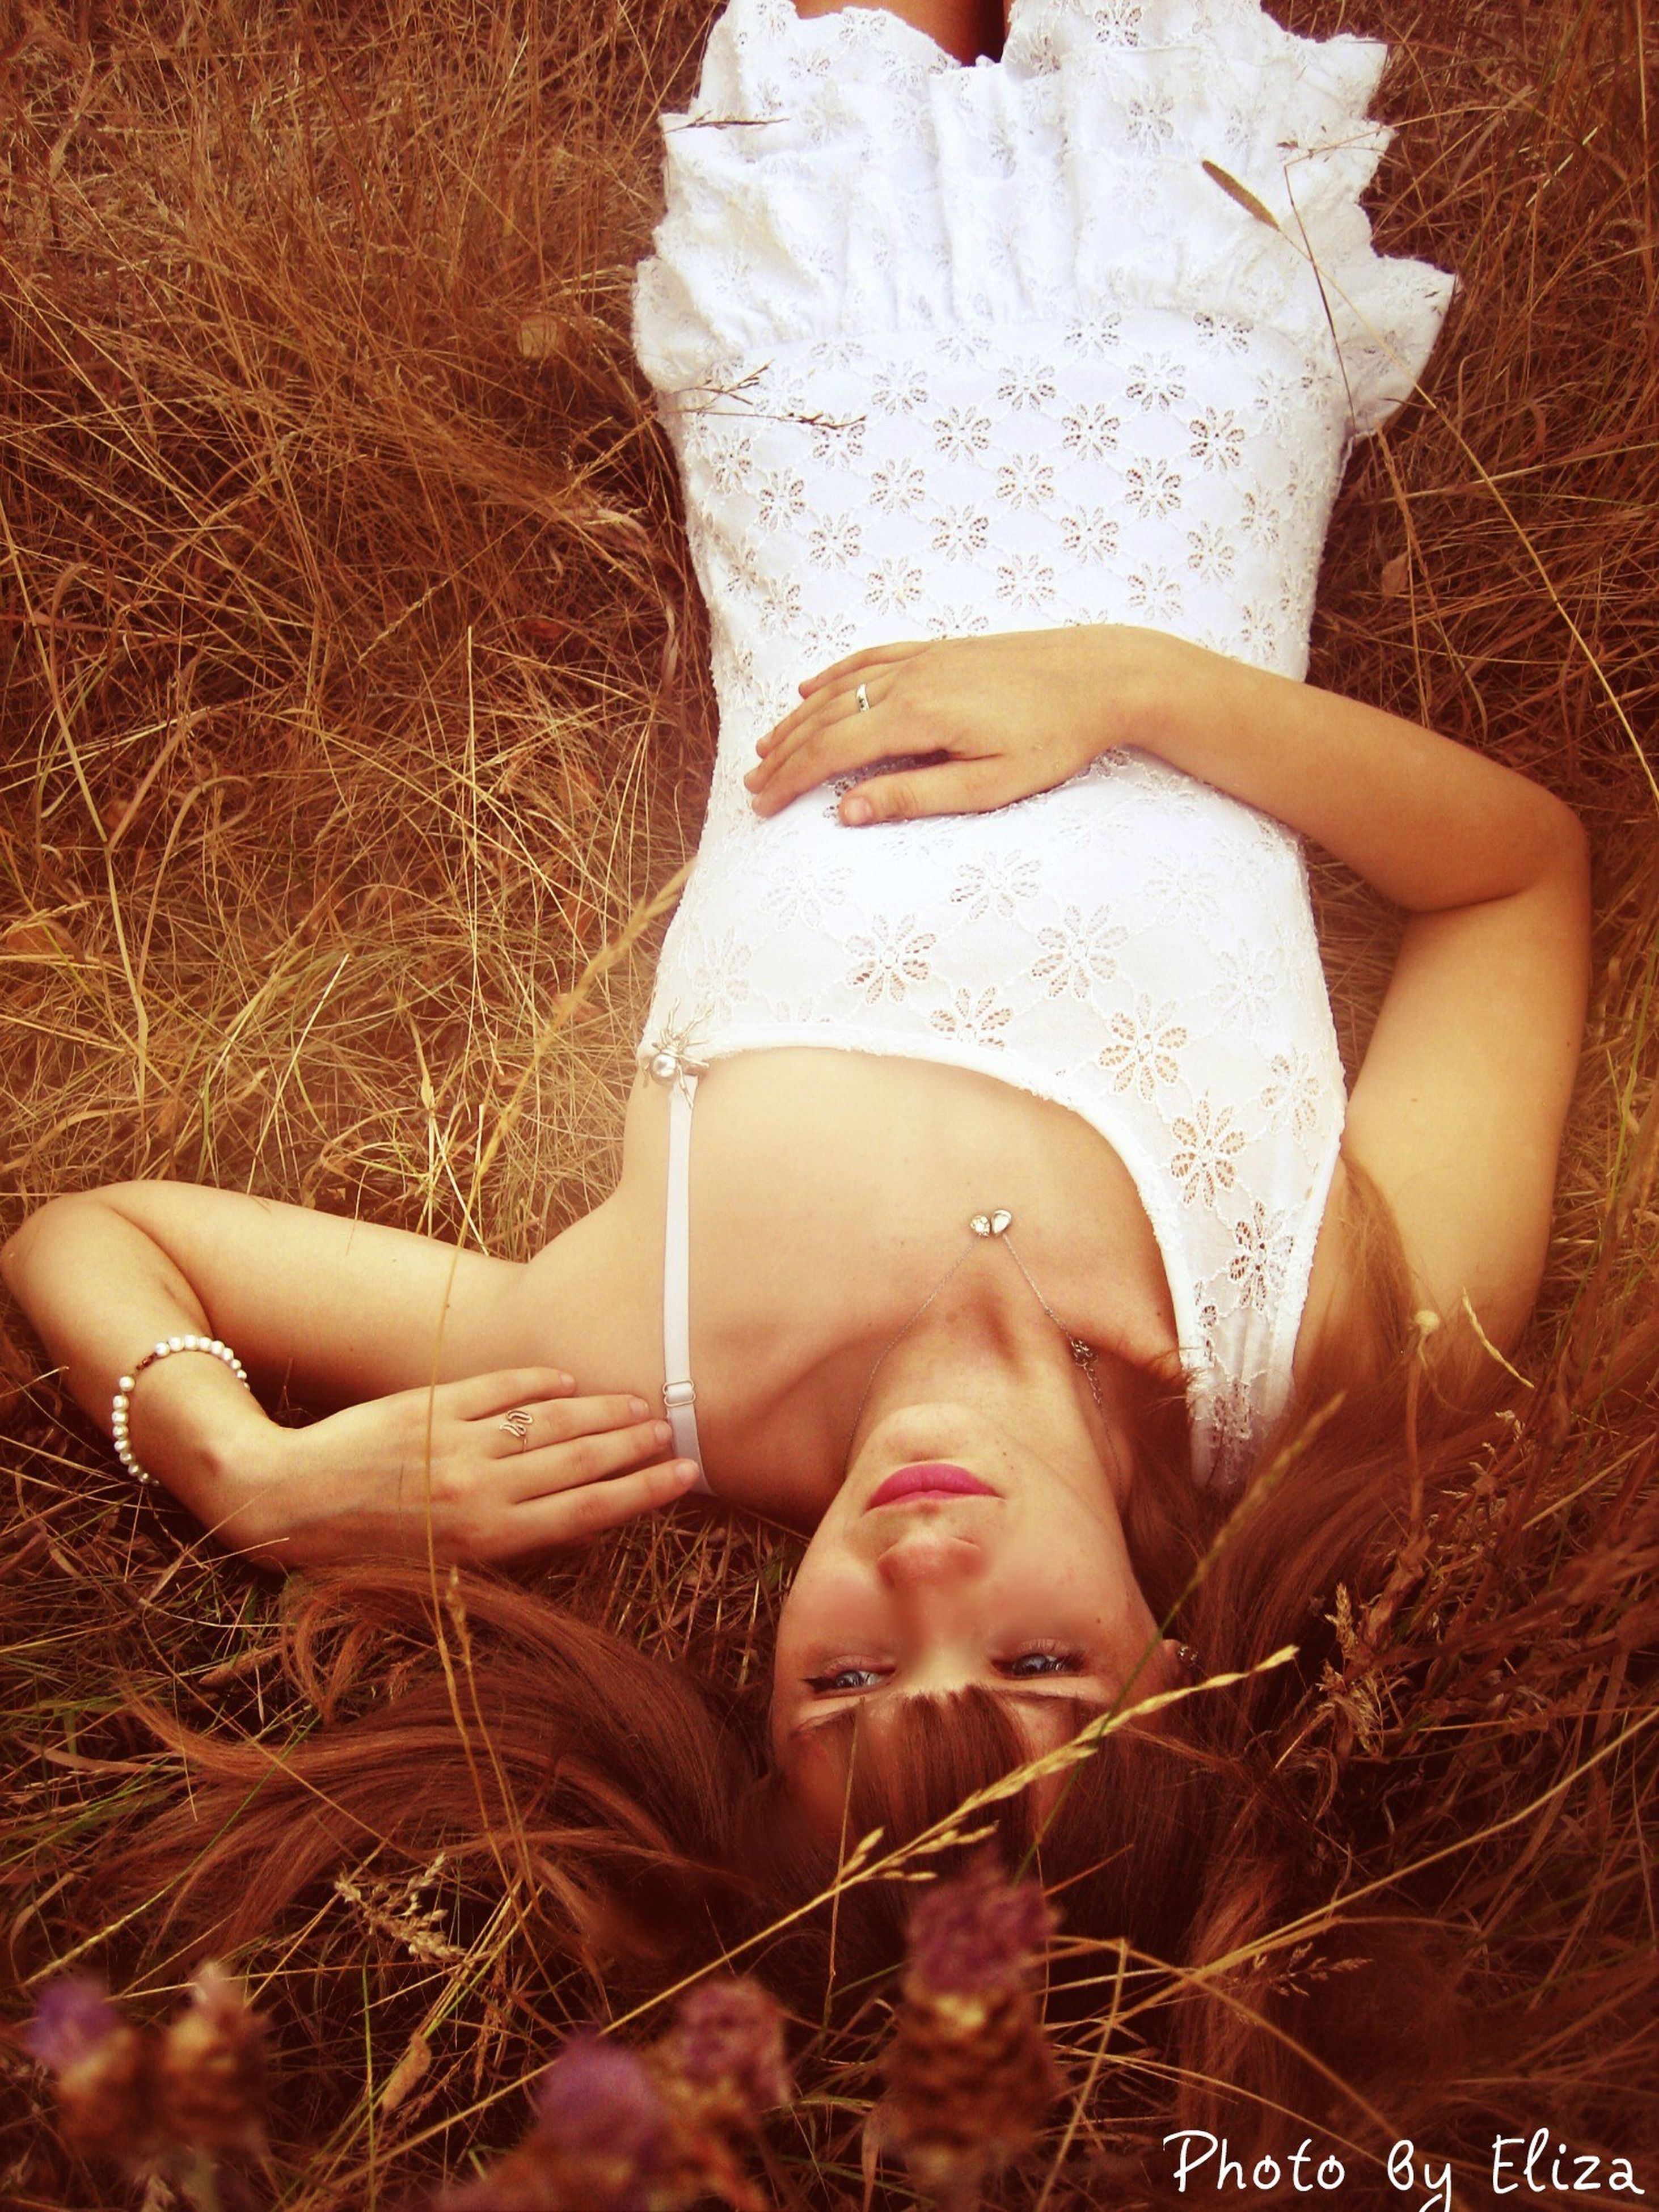 young adult, young women, lifestyles, person, leisure activity, looking at camera, portrait, relaxation, lying down, eyes closed, field, long hair, grass, sitting, front view, casual clothing, smiling